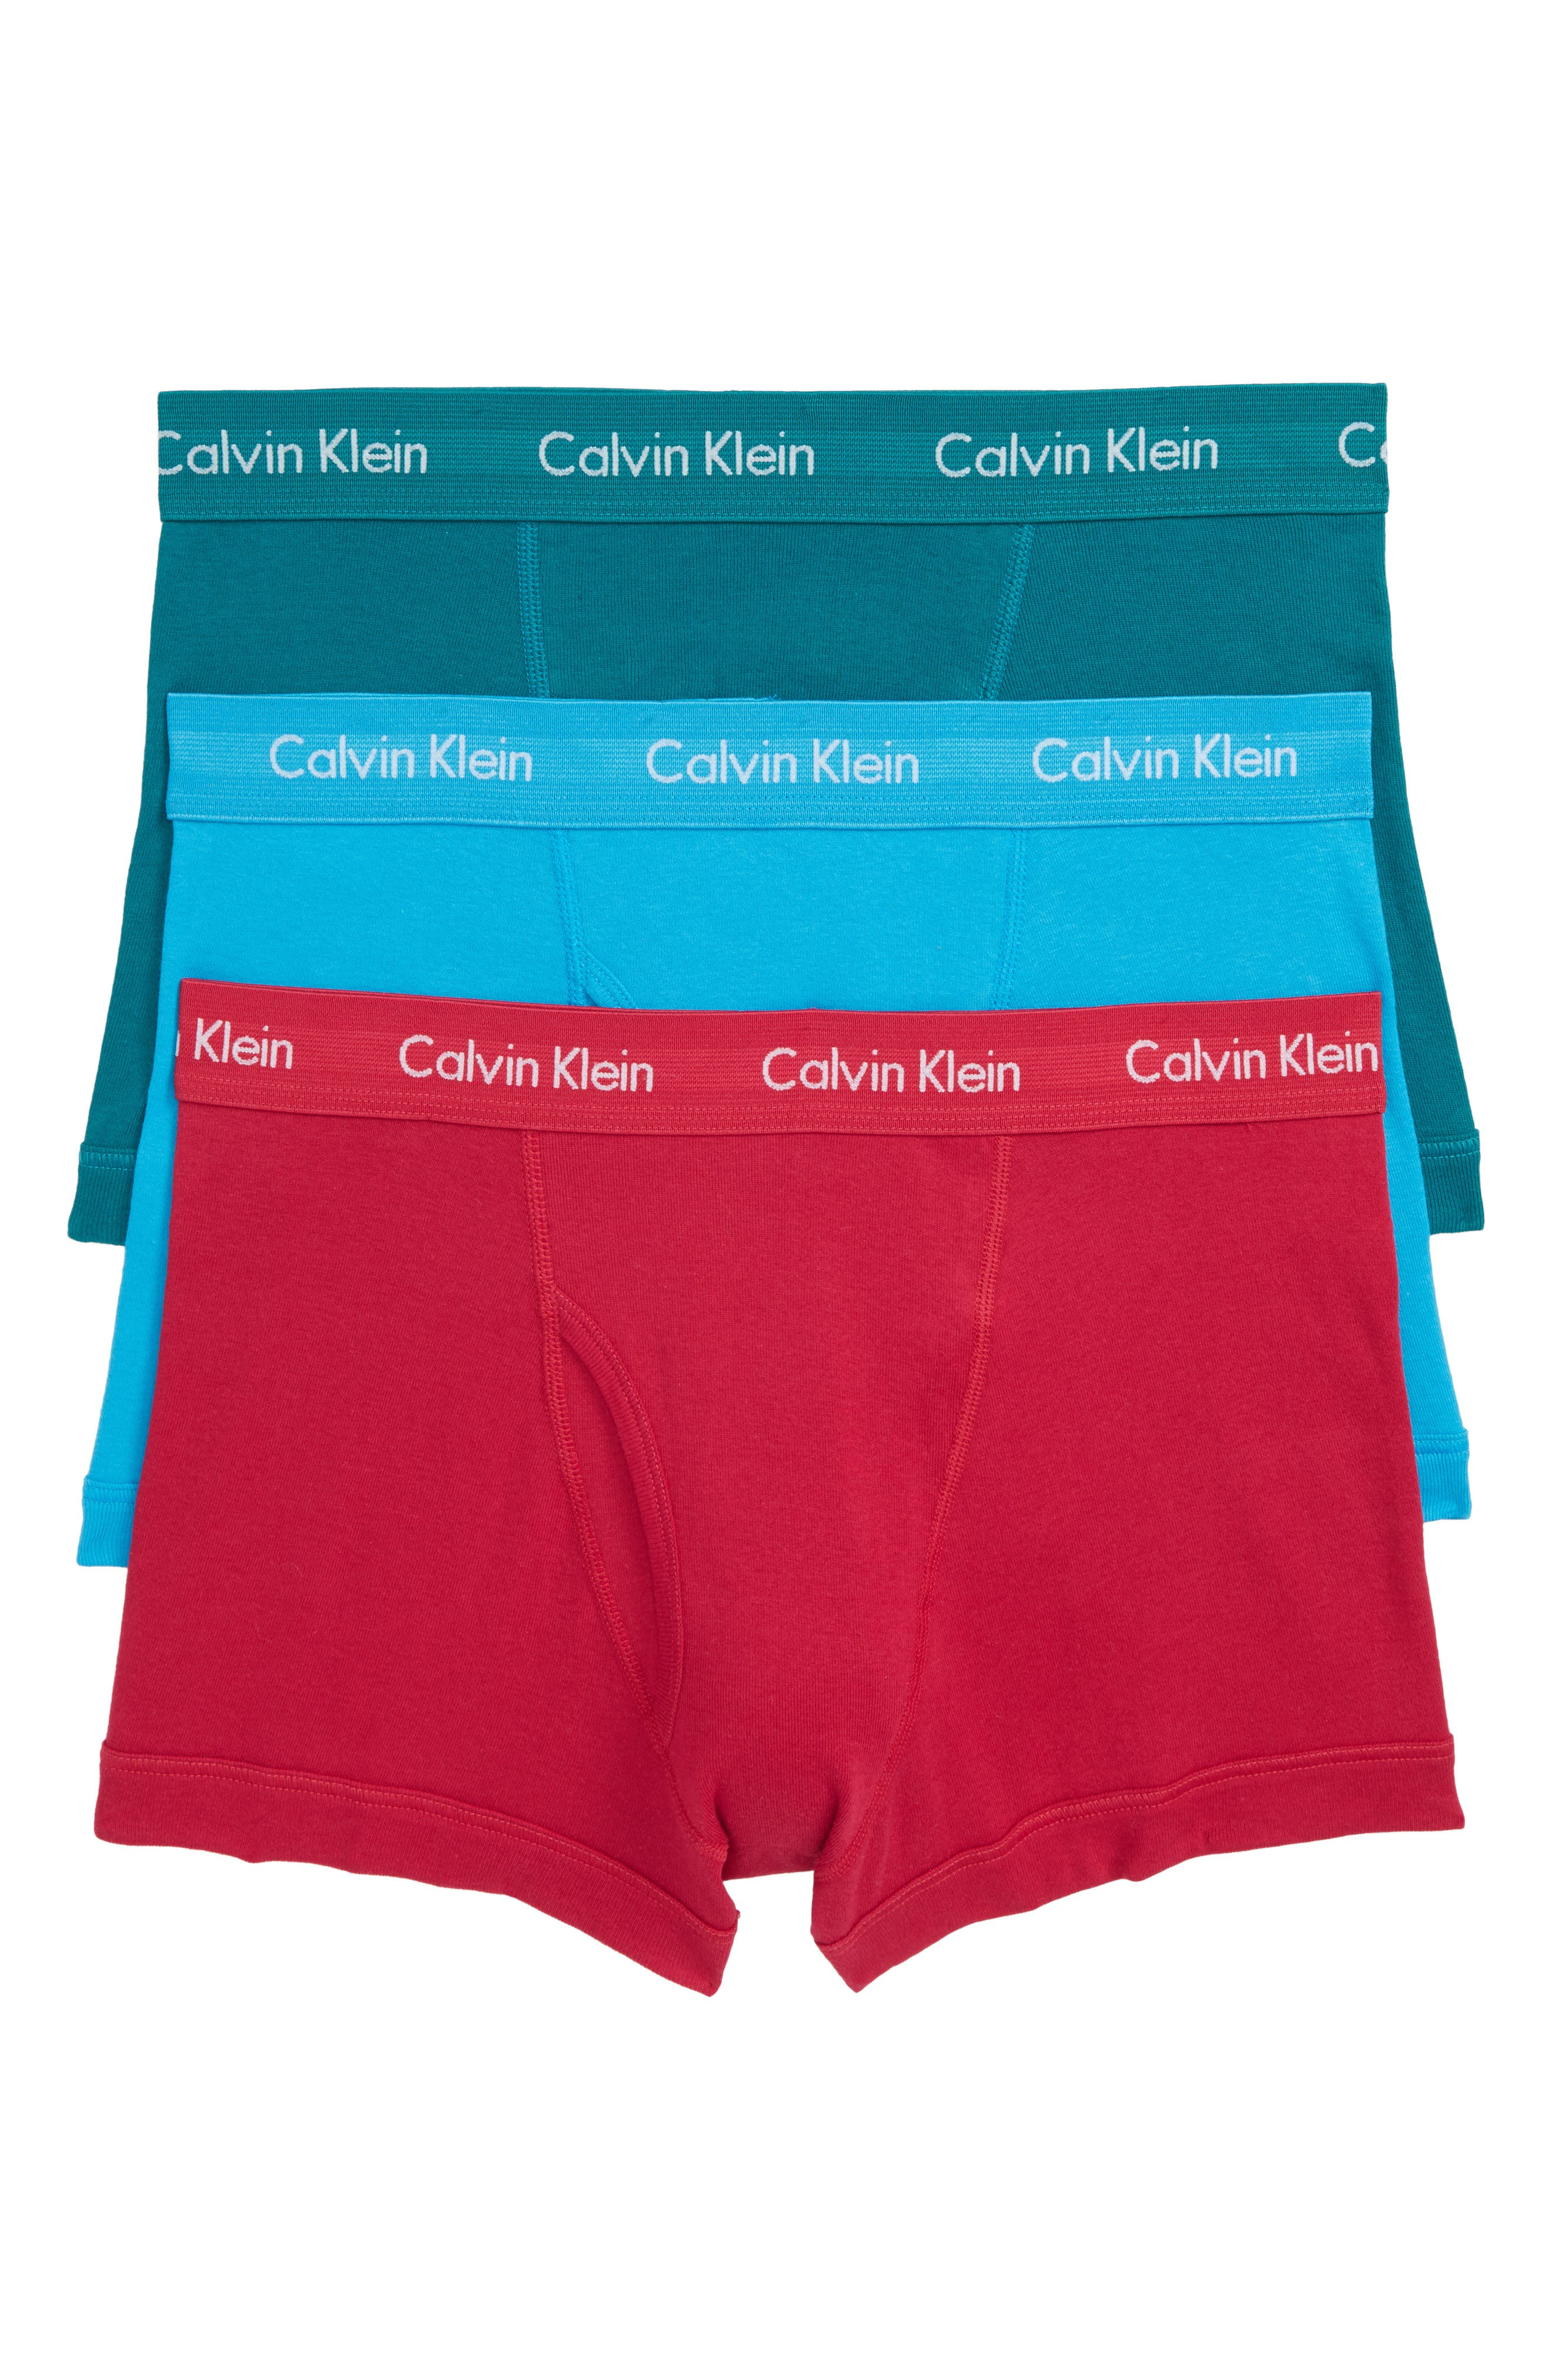 Main Image - Calvin Klein Cotton Trunks (3-Pack)